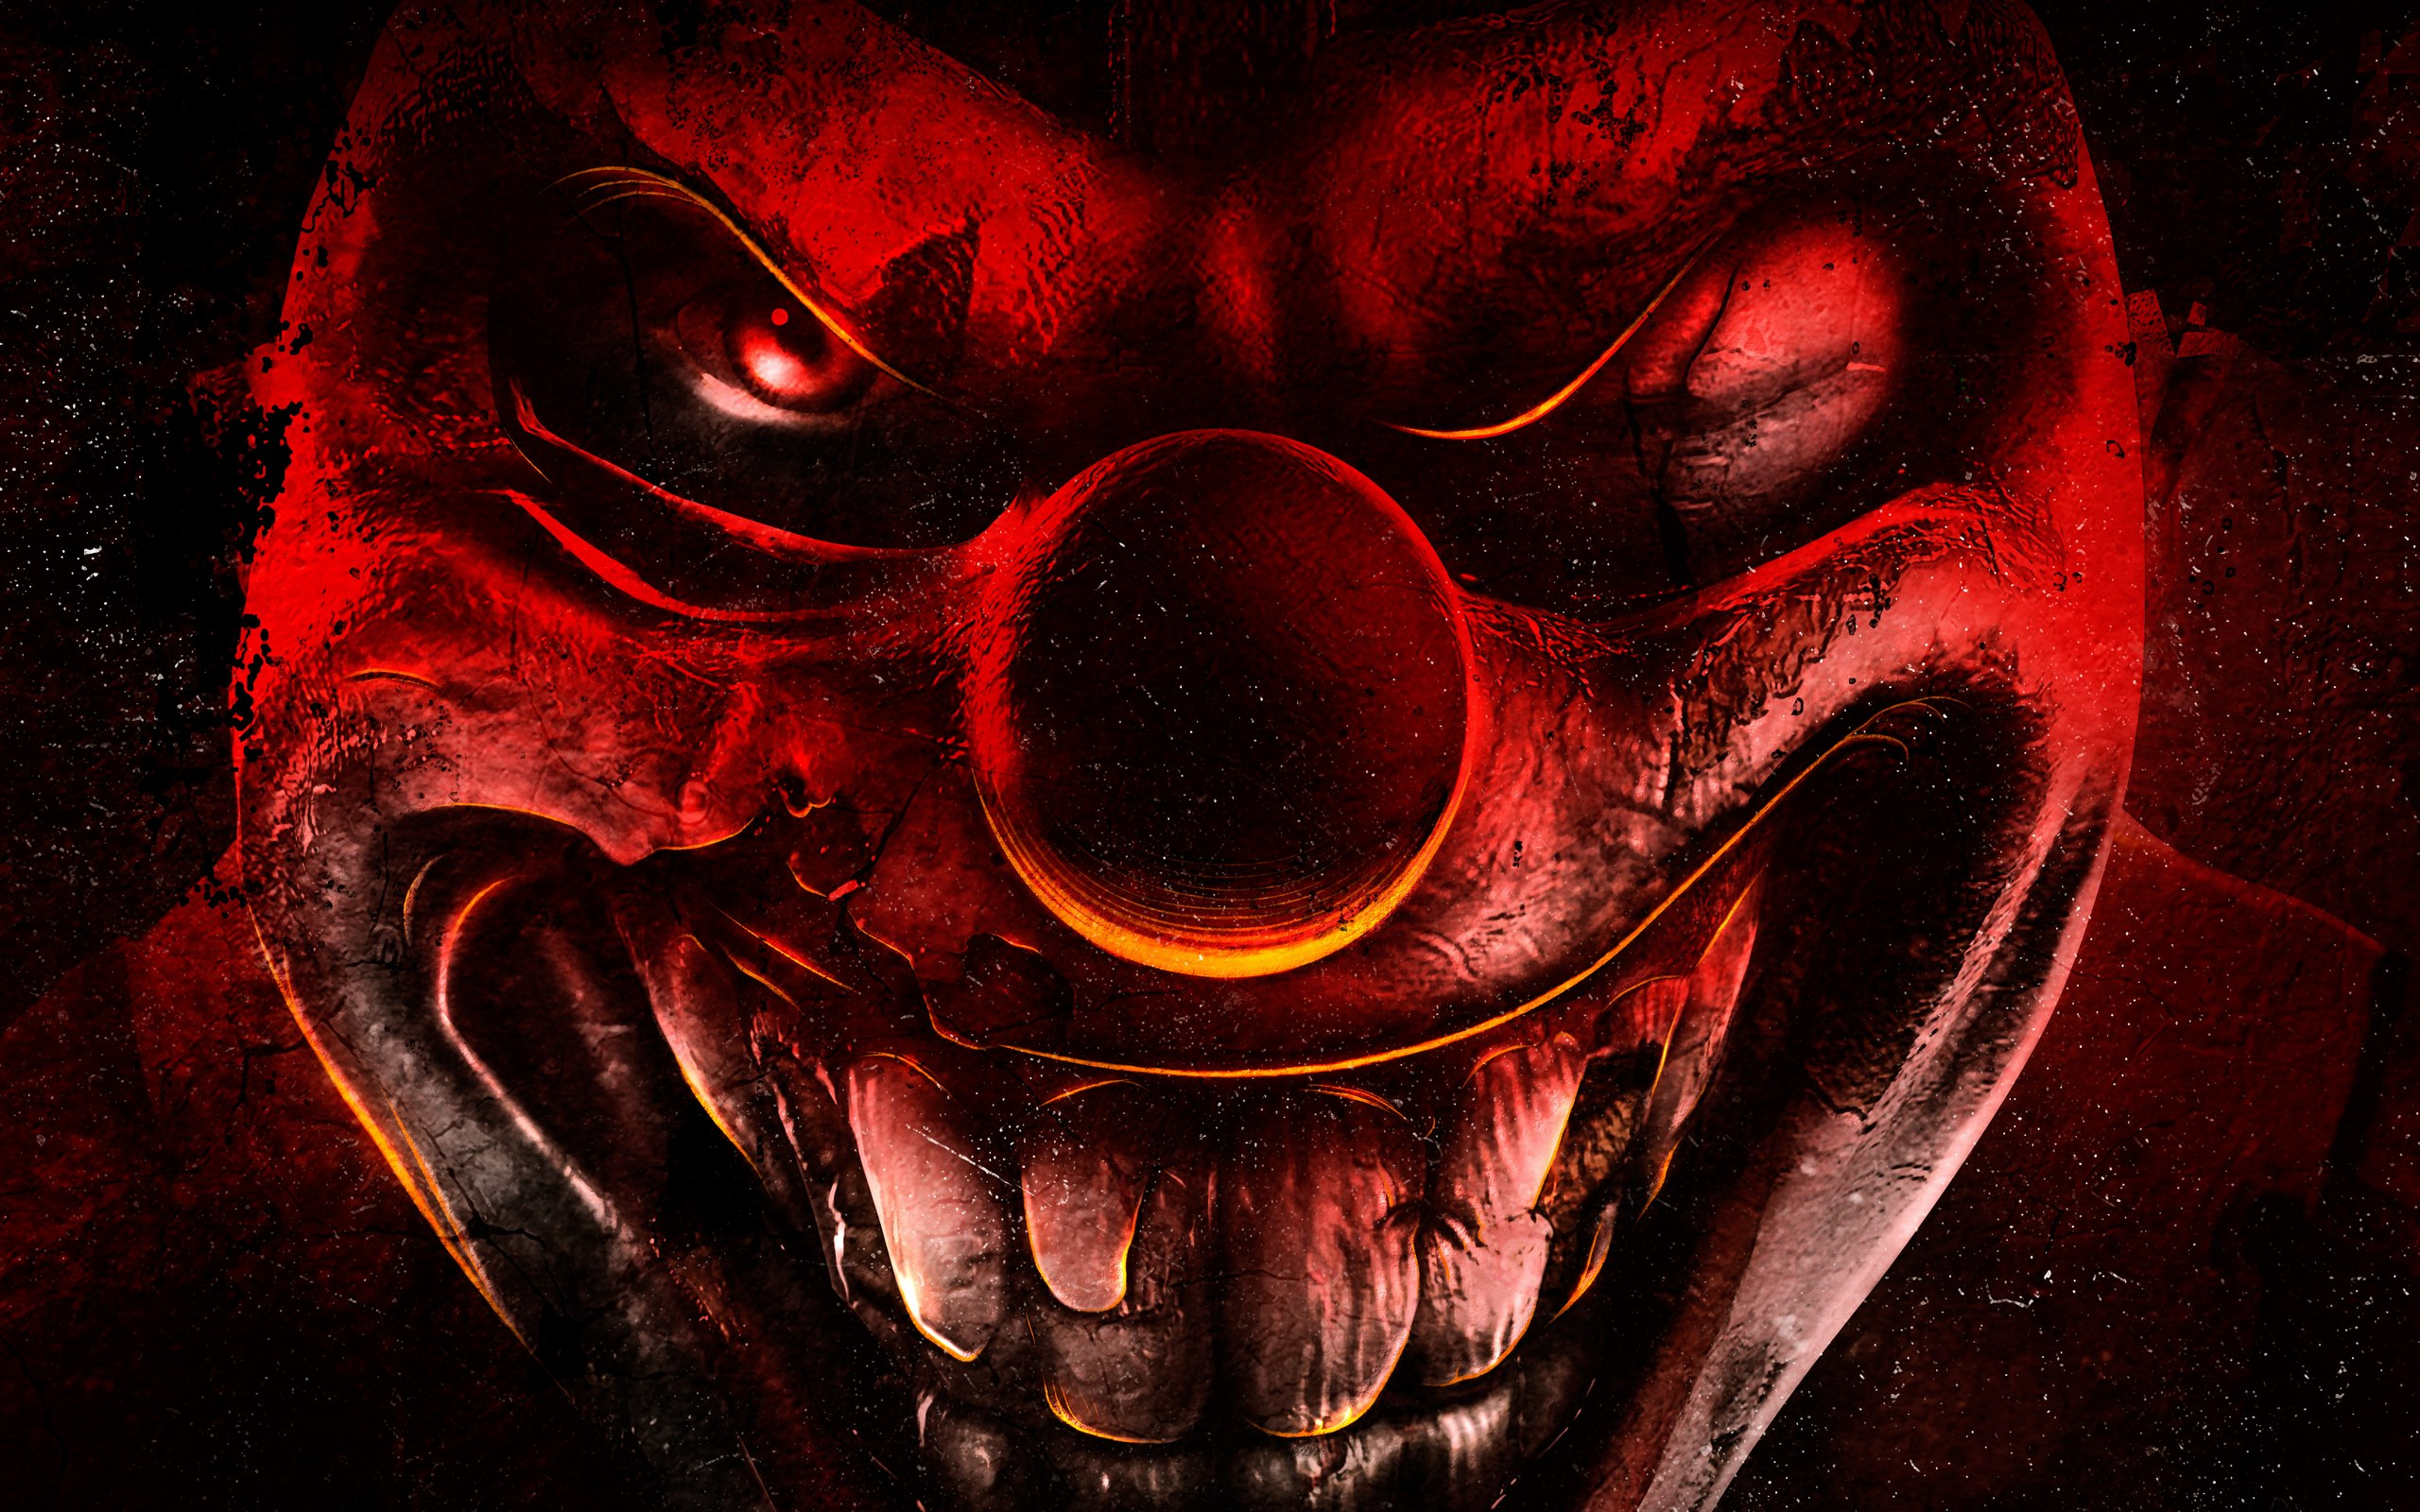 Scary Clown Wallpapers 25601600 22684 HD Wallpaper Res 2560x1600 2560x1600